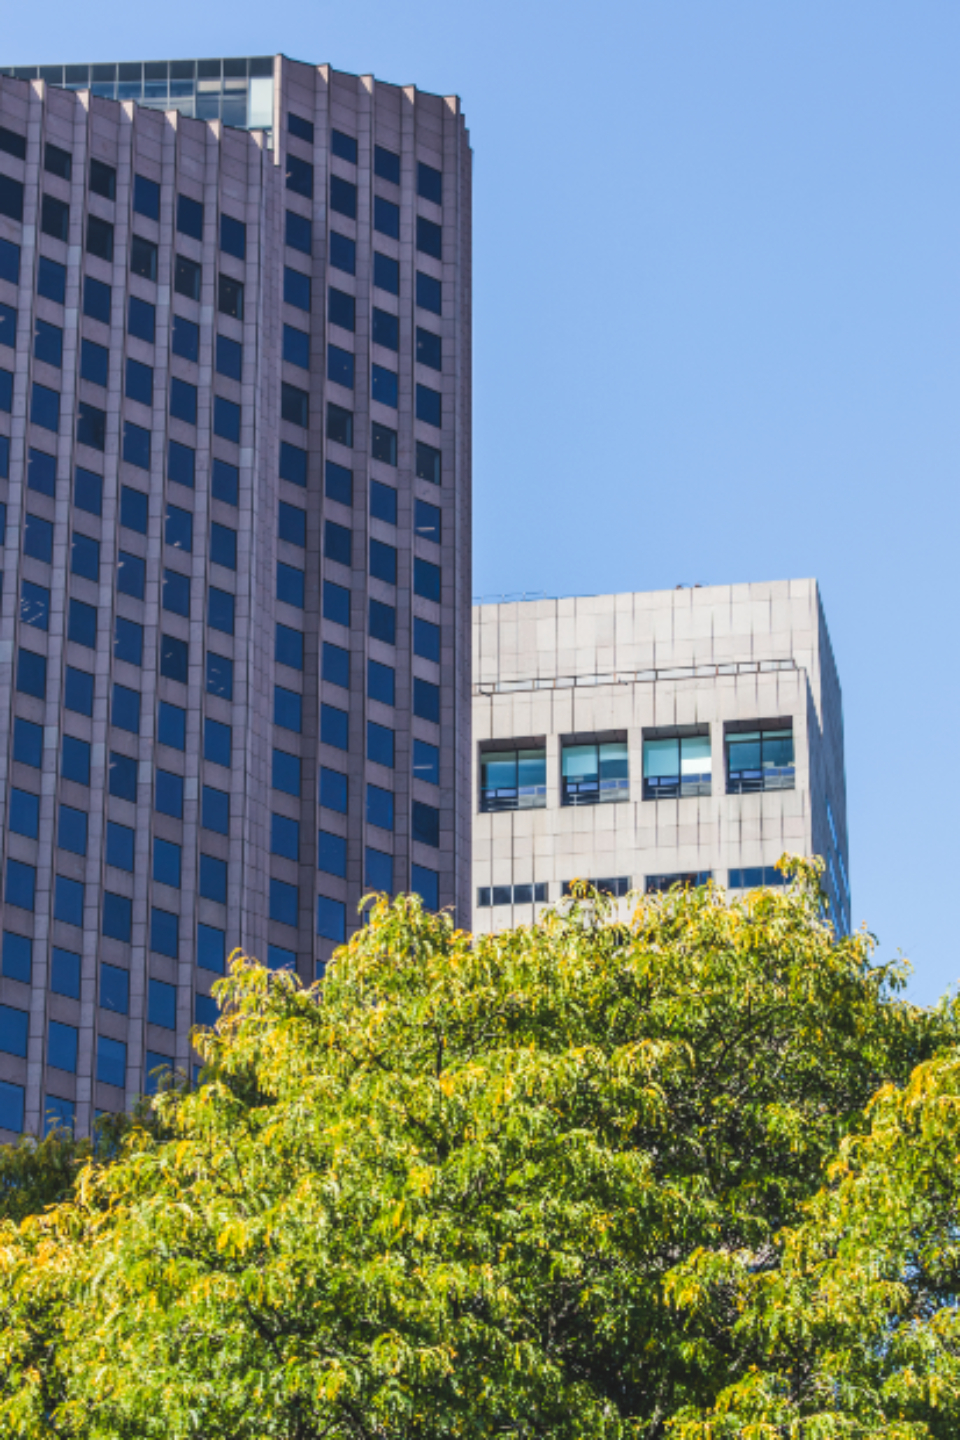 city sky windows downtown architecture daytime business exterior modern structure office buildings tree facade